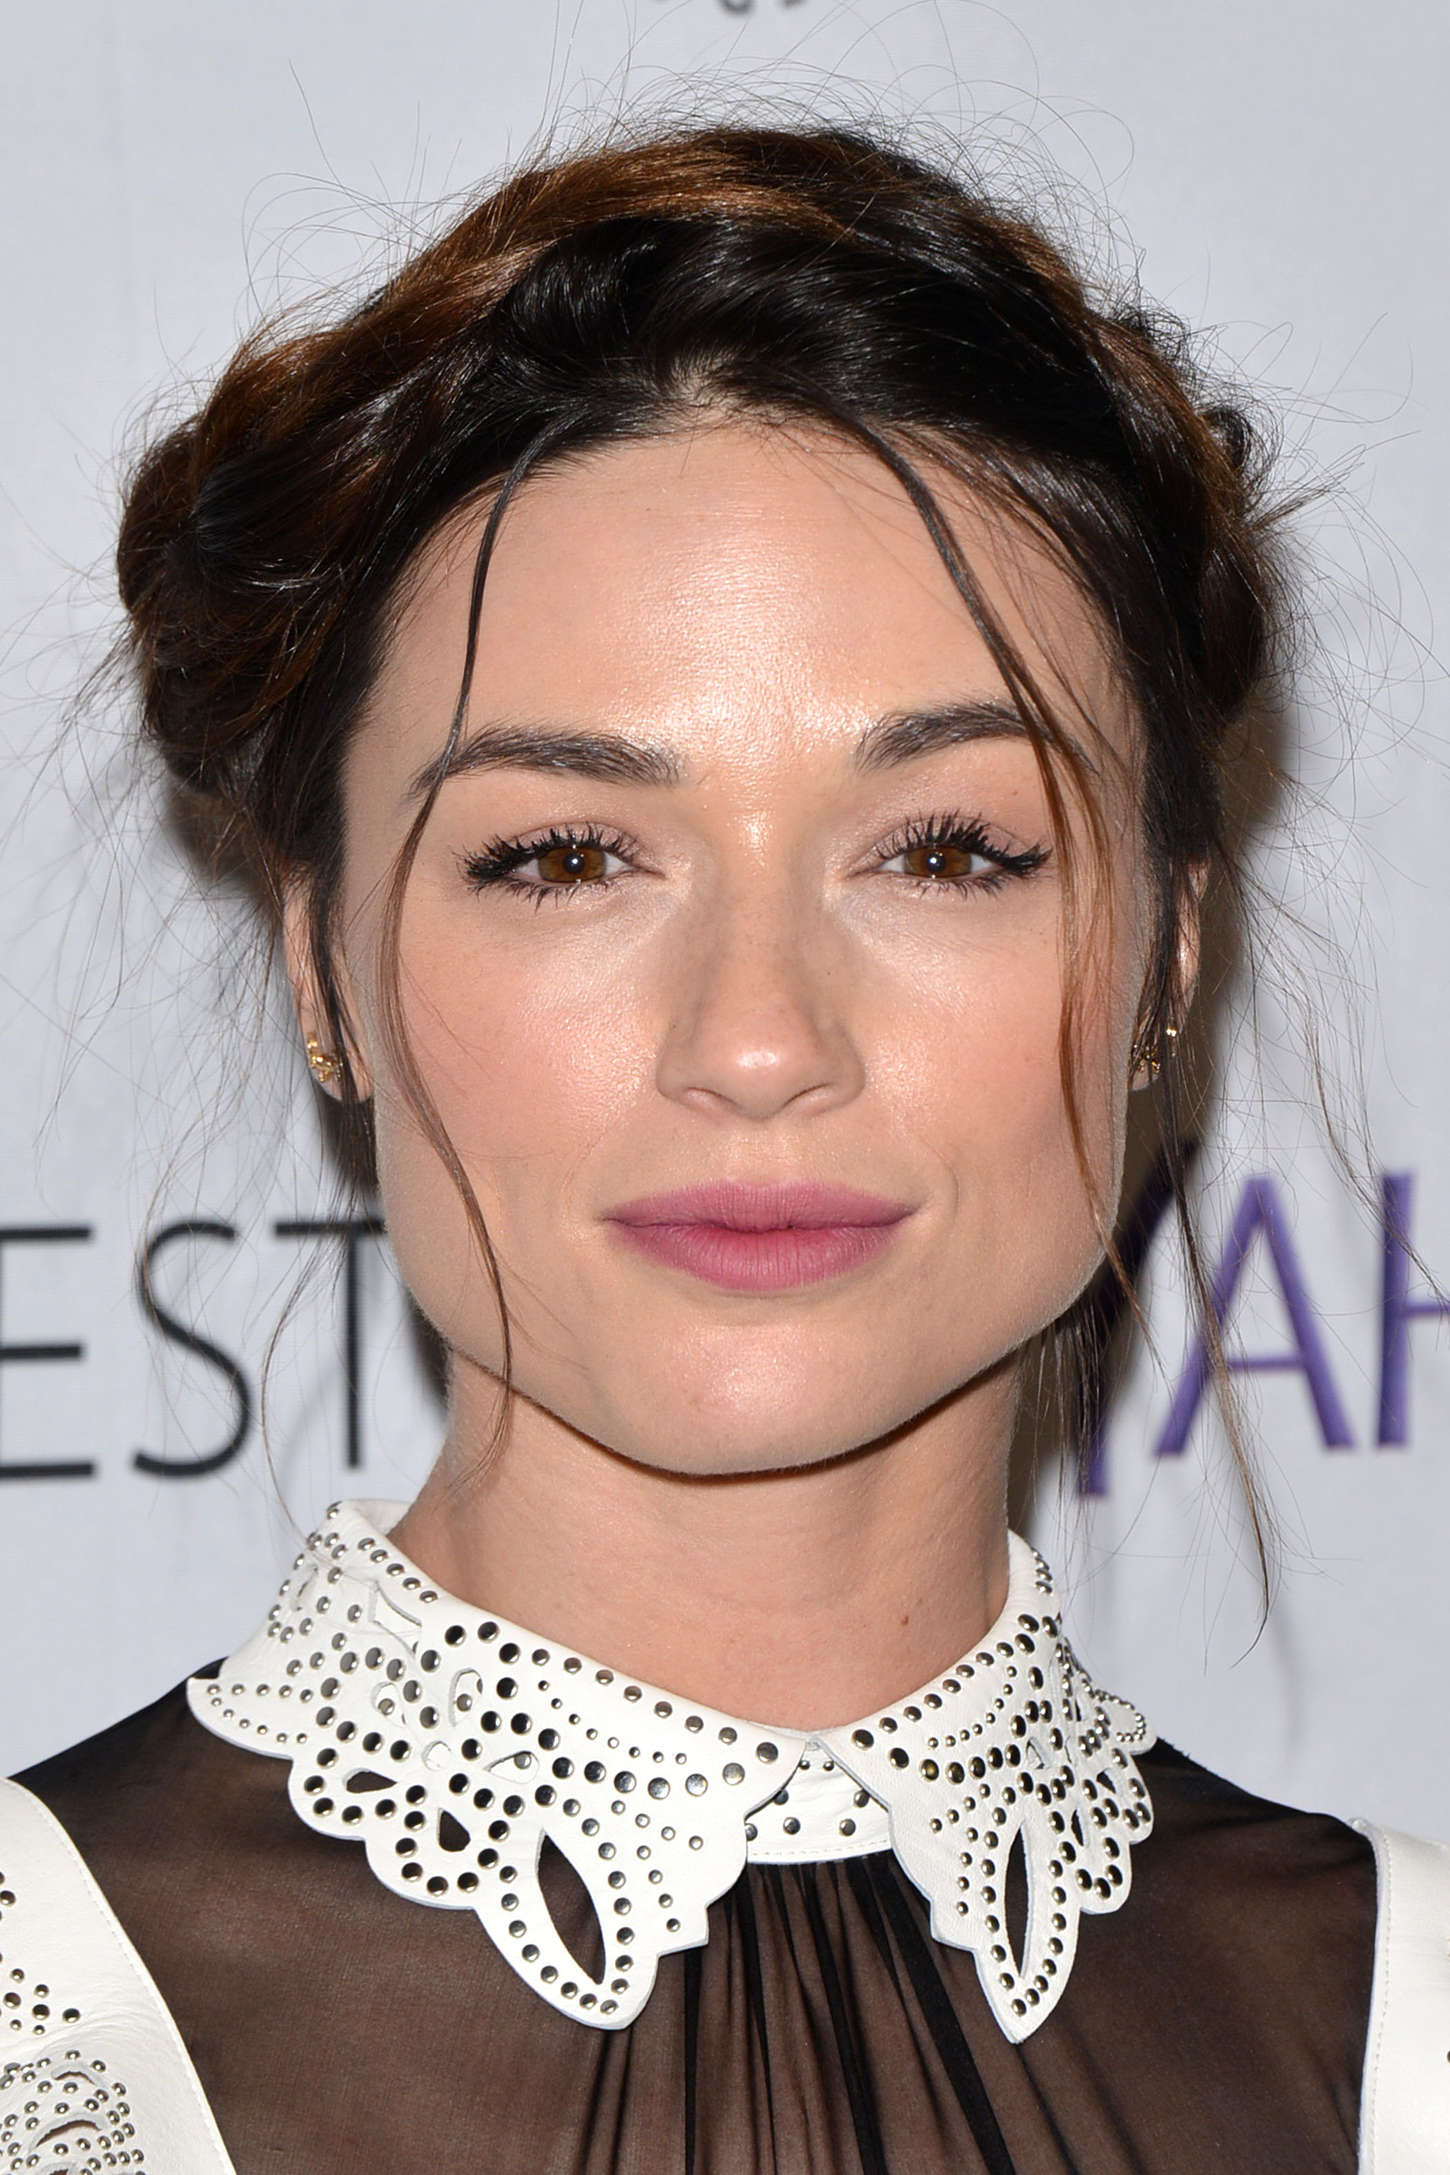 crystal reed tumblr gifcrystal reed instagram, crystal reed png, crystal reed tumblr, crystal reed gif, crystal reed 2016, crystal reed and daniel sharman, crystal reed wikipedia, crystal reed vk, crystal reed 2017, crystal reed gif hunt, crystal reed photoshoot, crystal reed фото, crystal reed films, crystal reed 2015, crystal reed gallery, crystal reed screencaps, crystal reed insta, crystal reed biography, crystal reed tumblr gif, crystal reed кинопоиск